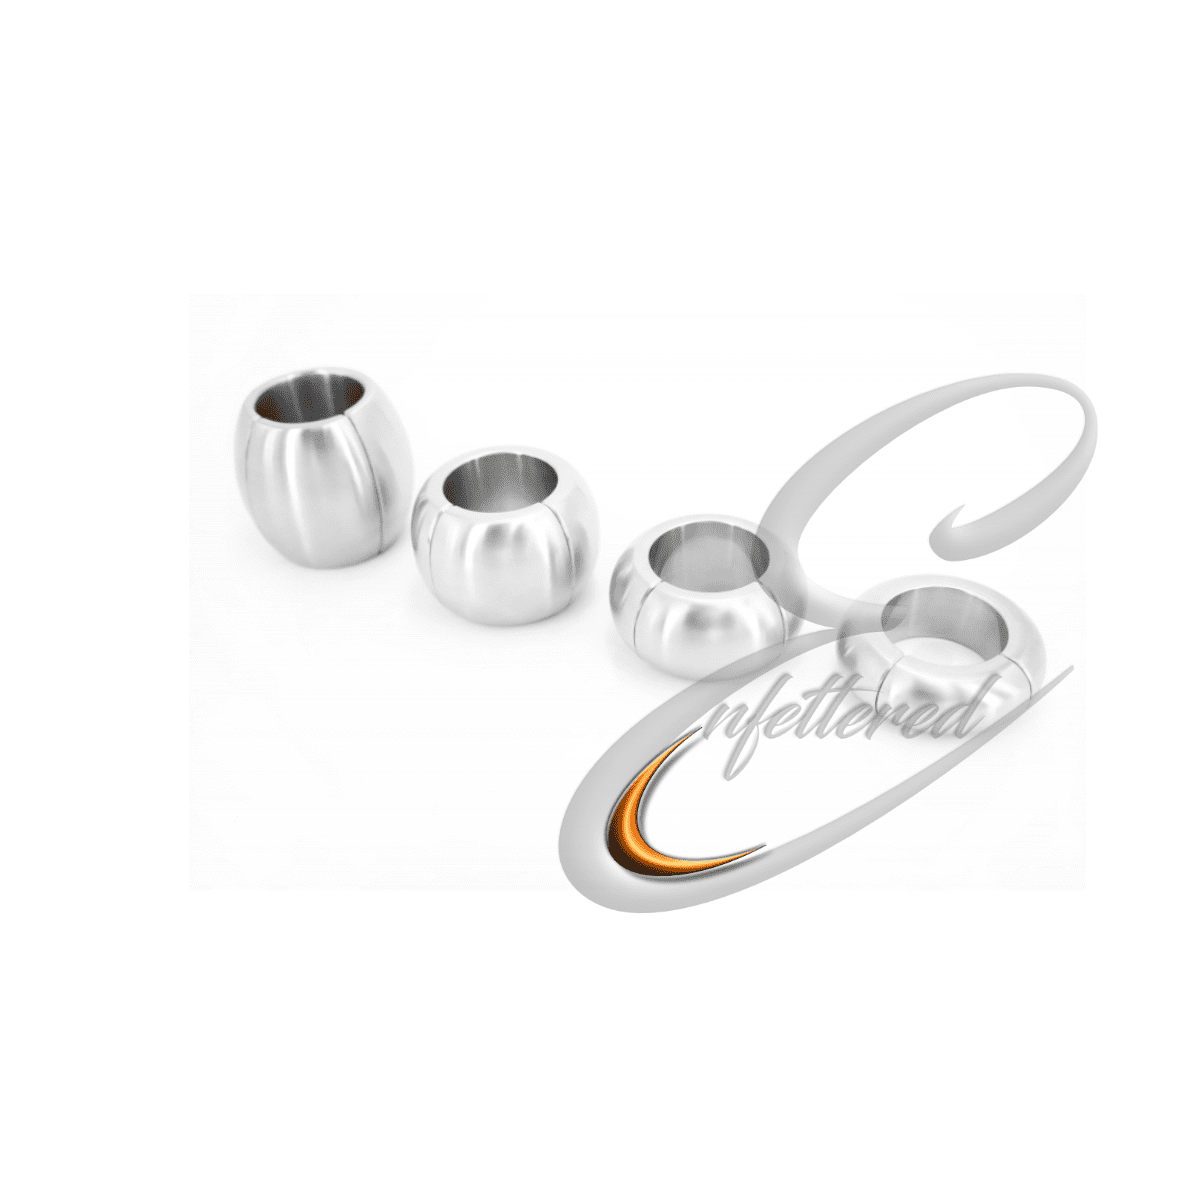 Enfettered Stainless Steel Magnetic Ball Stretcher -Donut